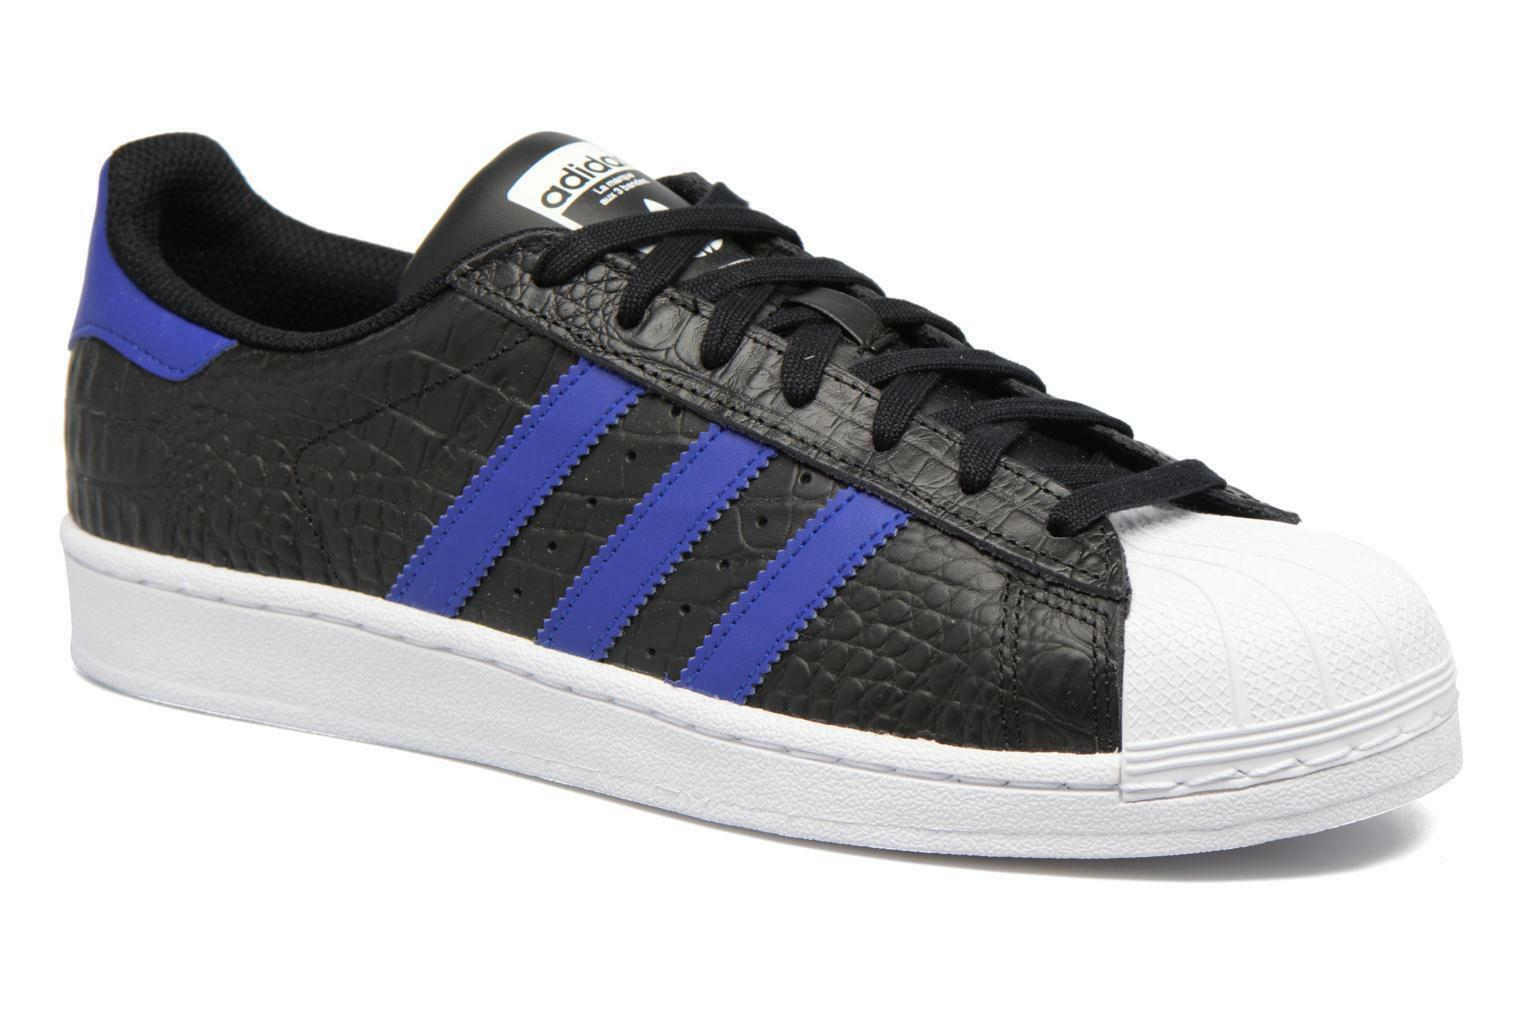 Adidas Originals Superstar Animal Mens Trainers Sneakers Shoes - BZ0196 - Black